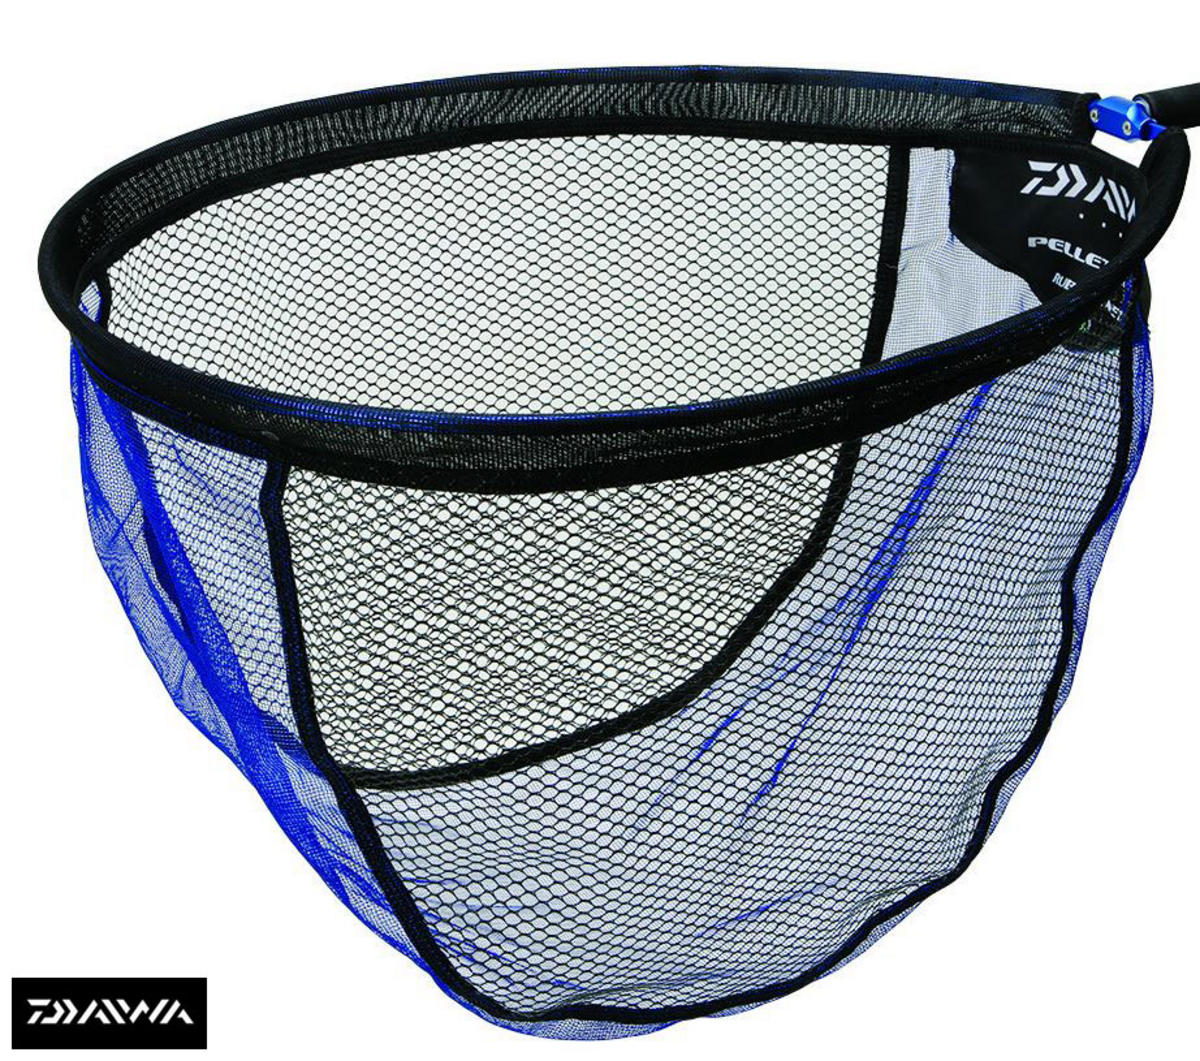 New daiwa pellet mesh rubber landing net head all sizes for Rubber fishing nets